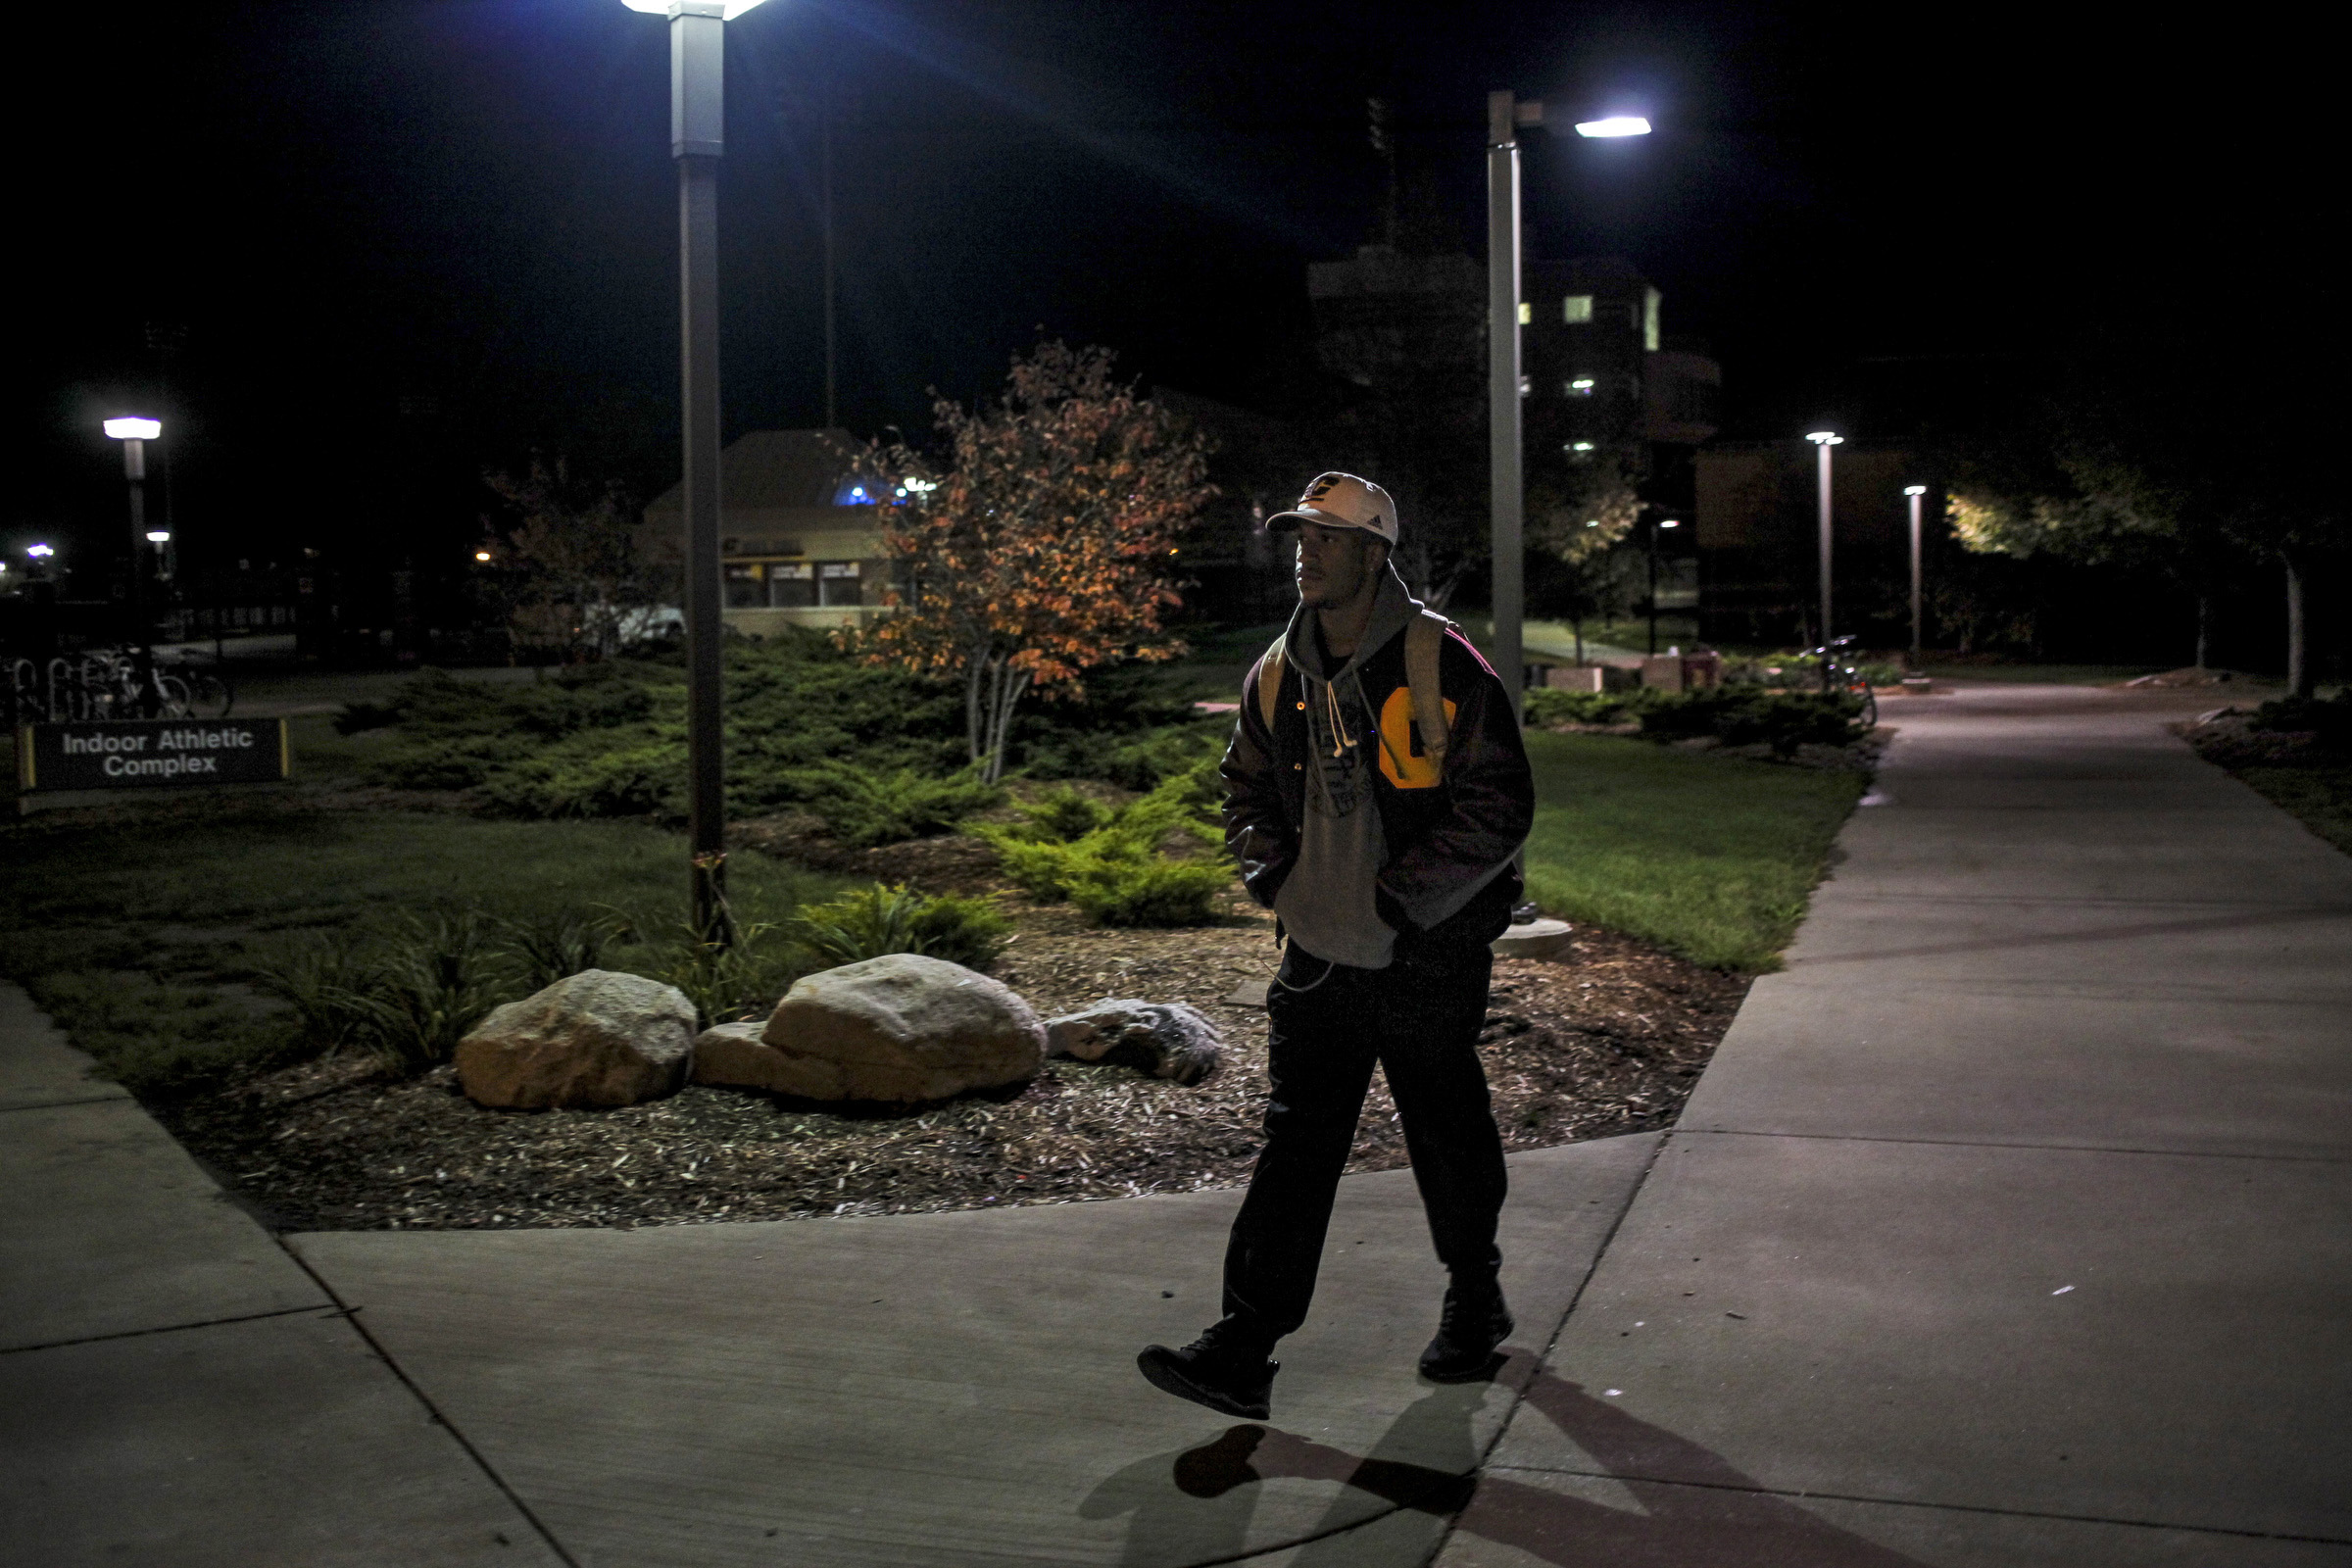 After a long day at school, Ray Golden, Jr., leaves campus. With days that start with early morning practices and a day full of classes, Ray gets to campus when it's dark and often doesn't leave until after dark. (Photo: Josephine Norris/GroundTruth)